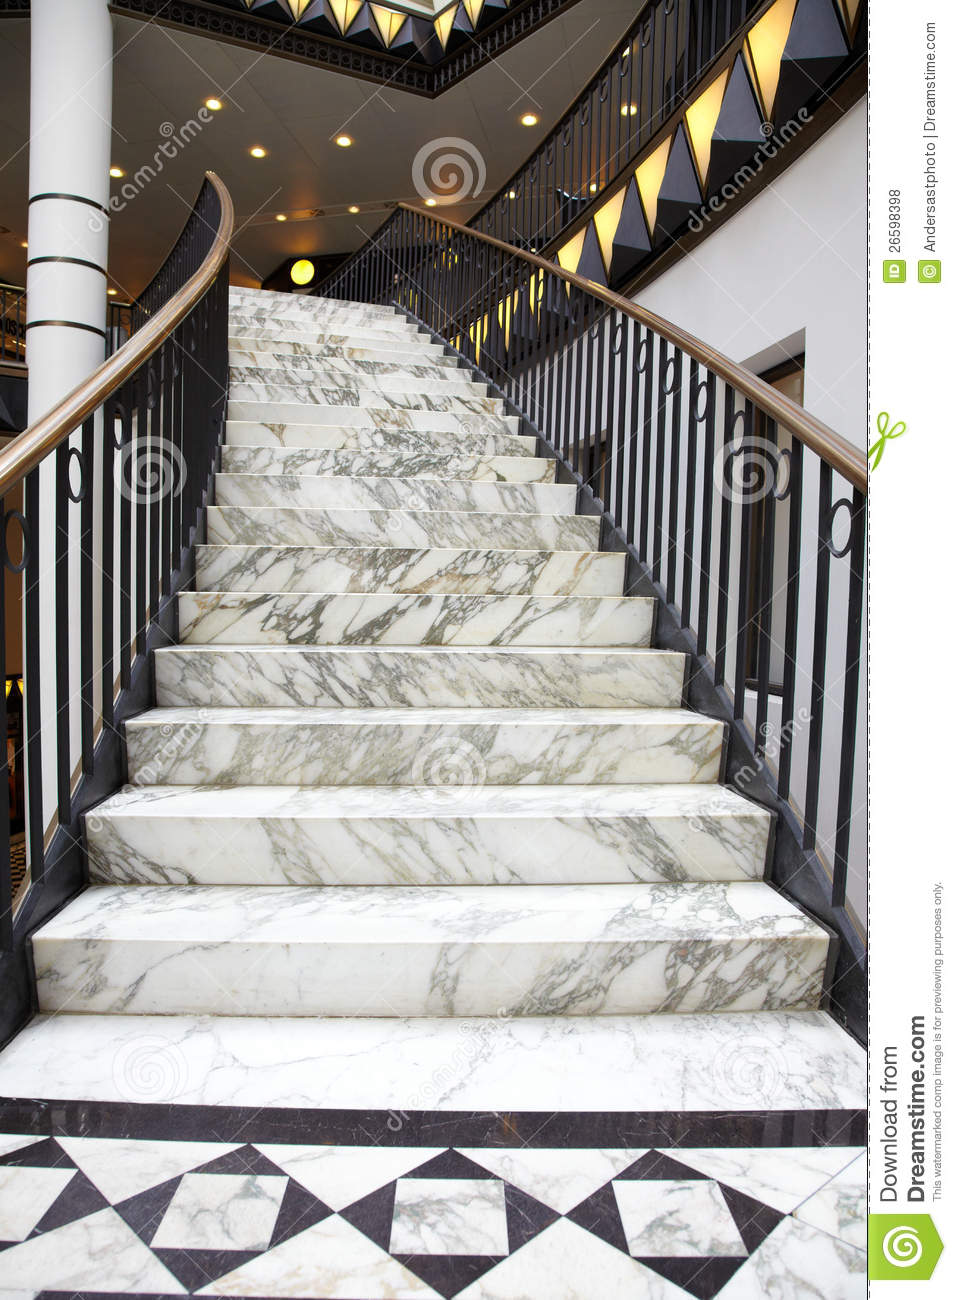 White Marble Stair In Luxury Interior Stock Photo  Image